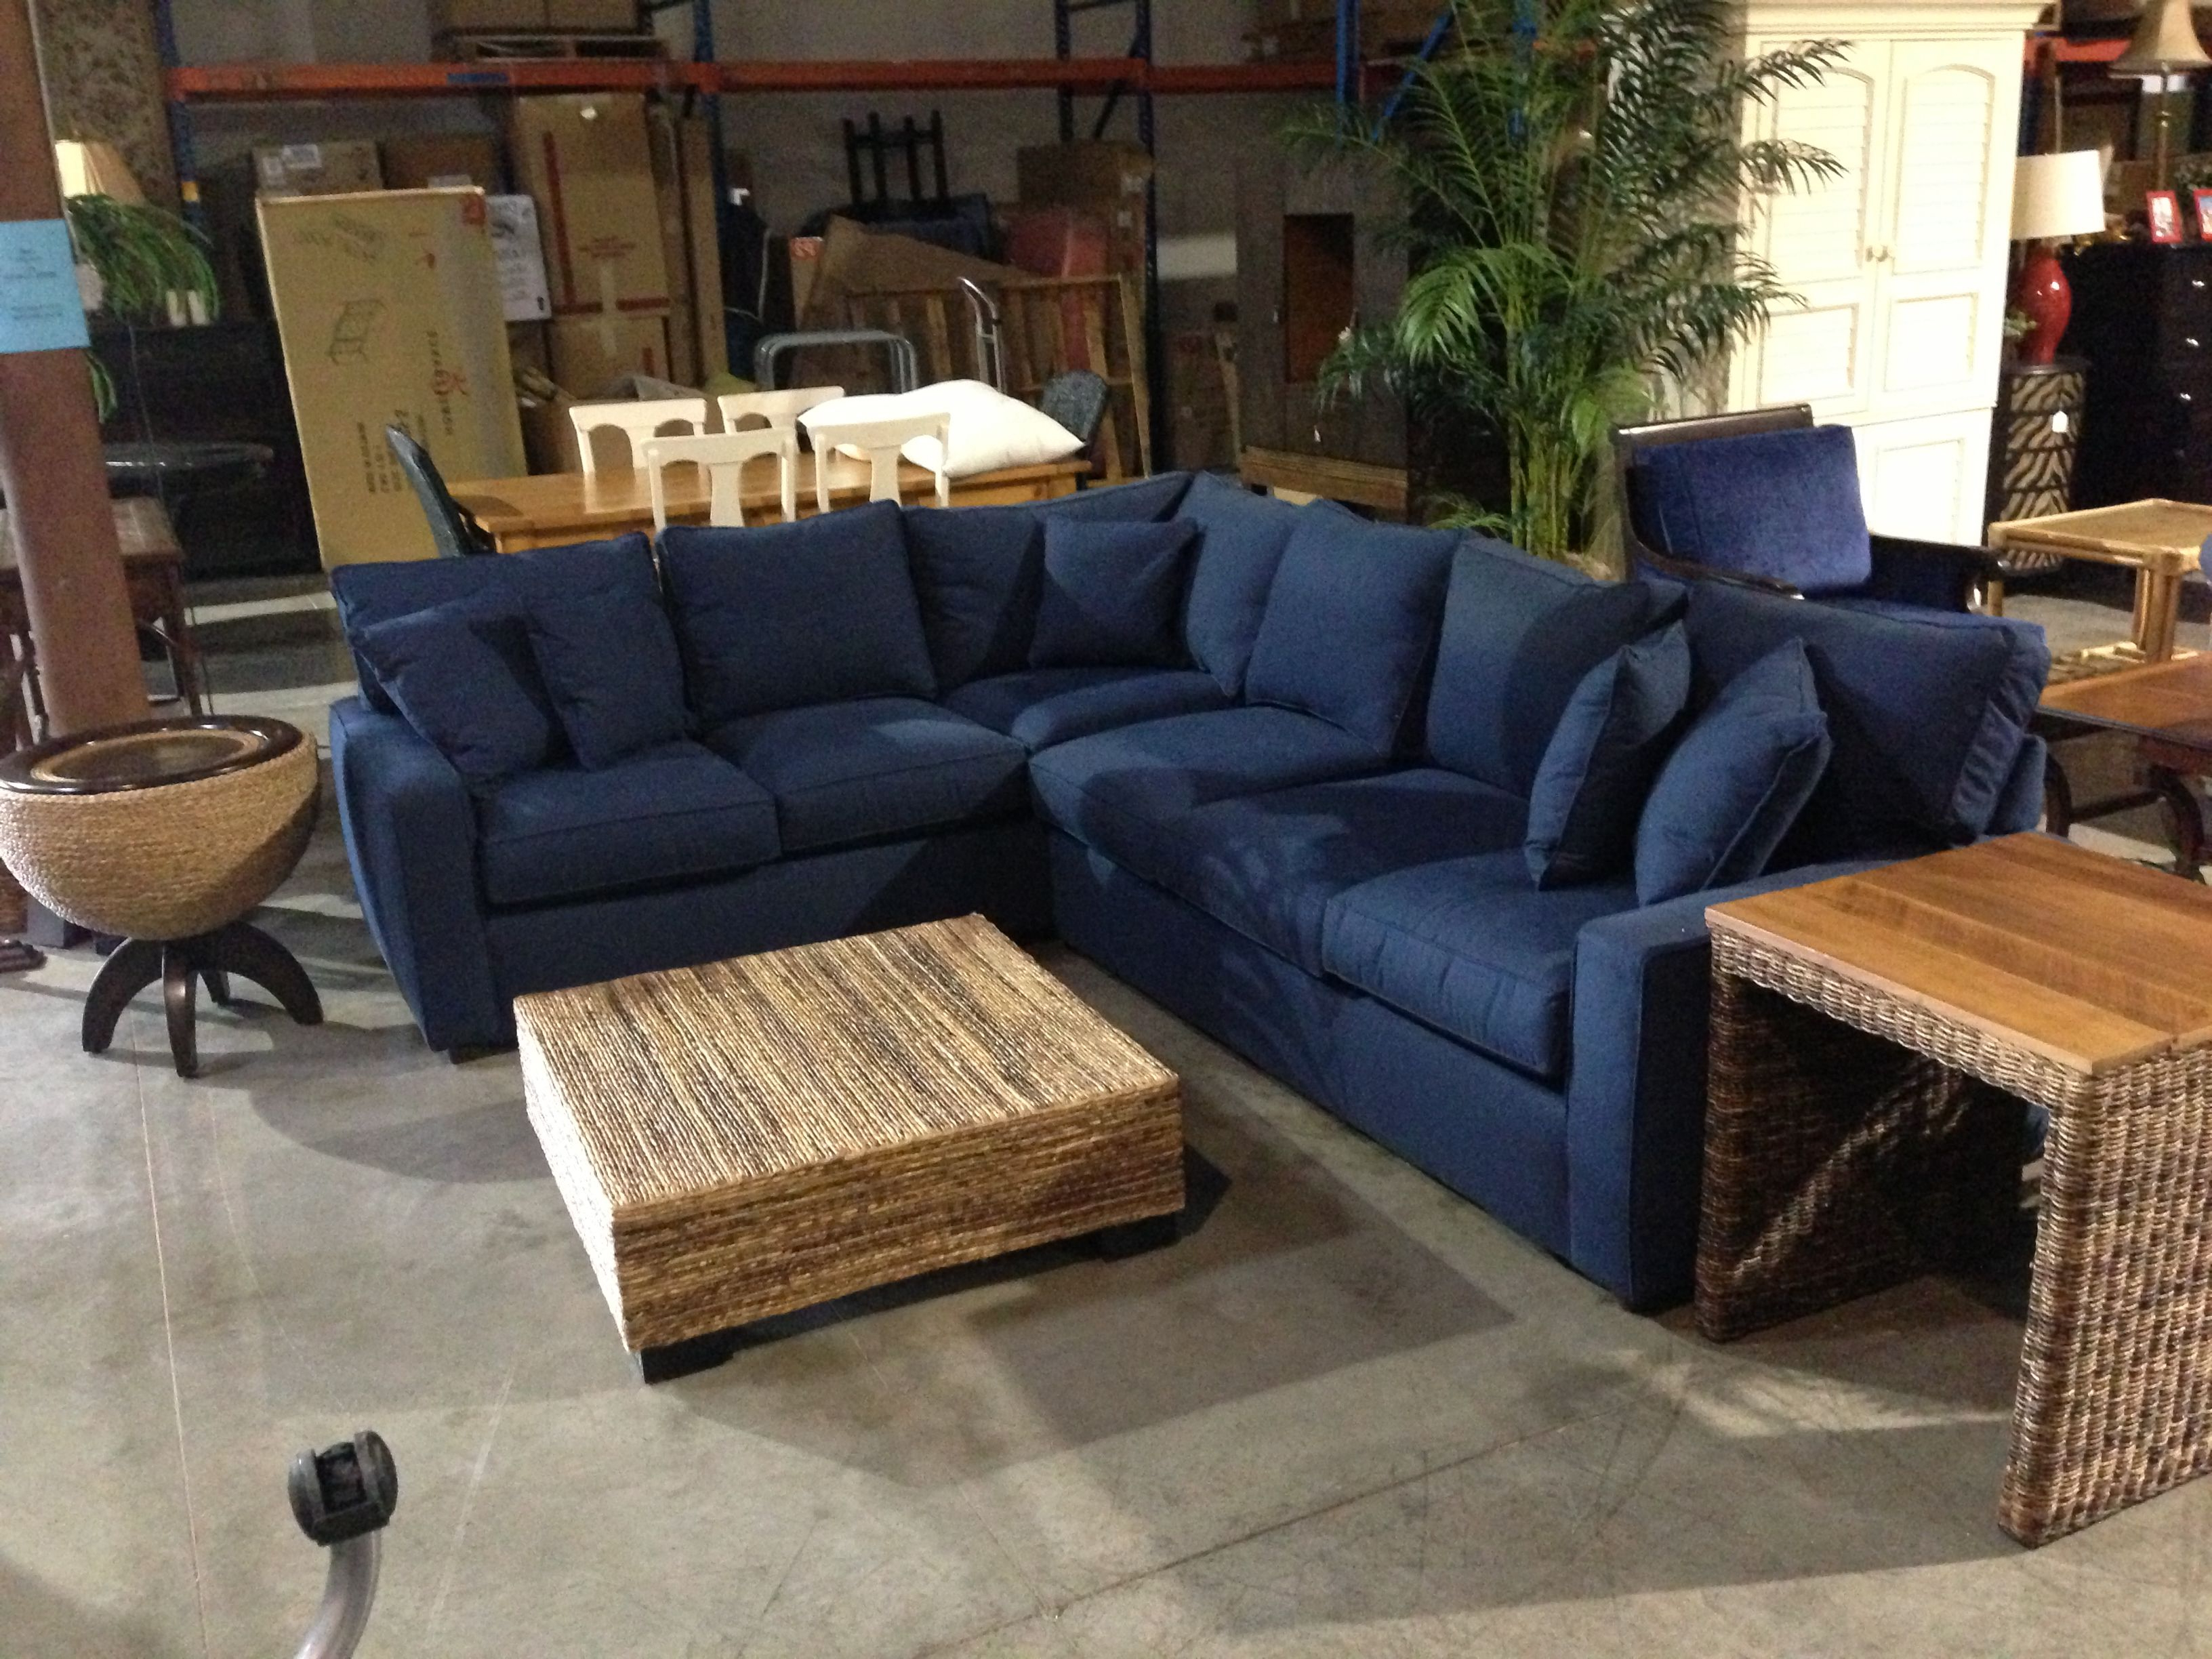 Tropical Beachy Style For My Home In Widely Used Collins Sofa Sectionals With Reversible Chaise (Gallery 8 of 20)